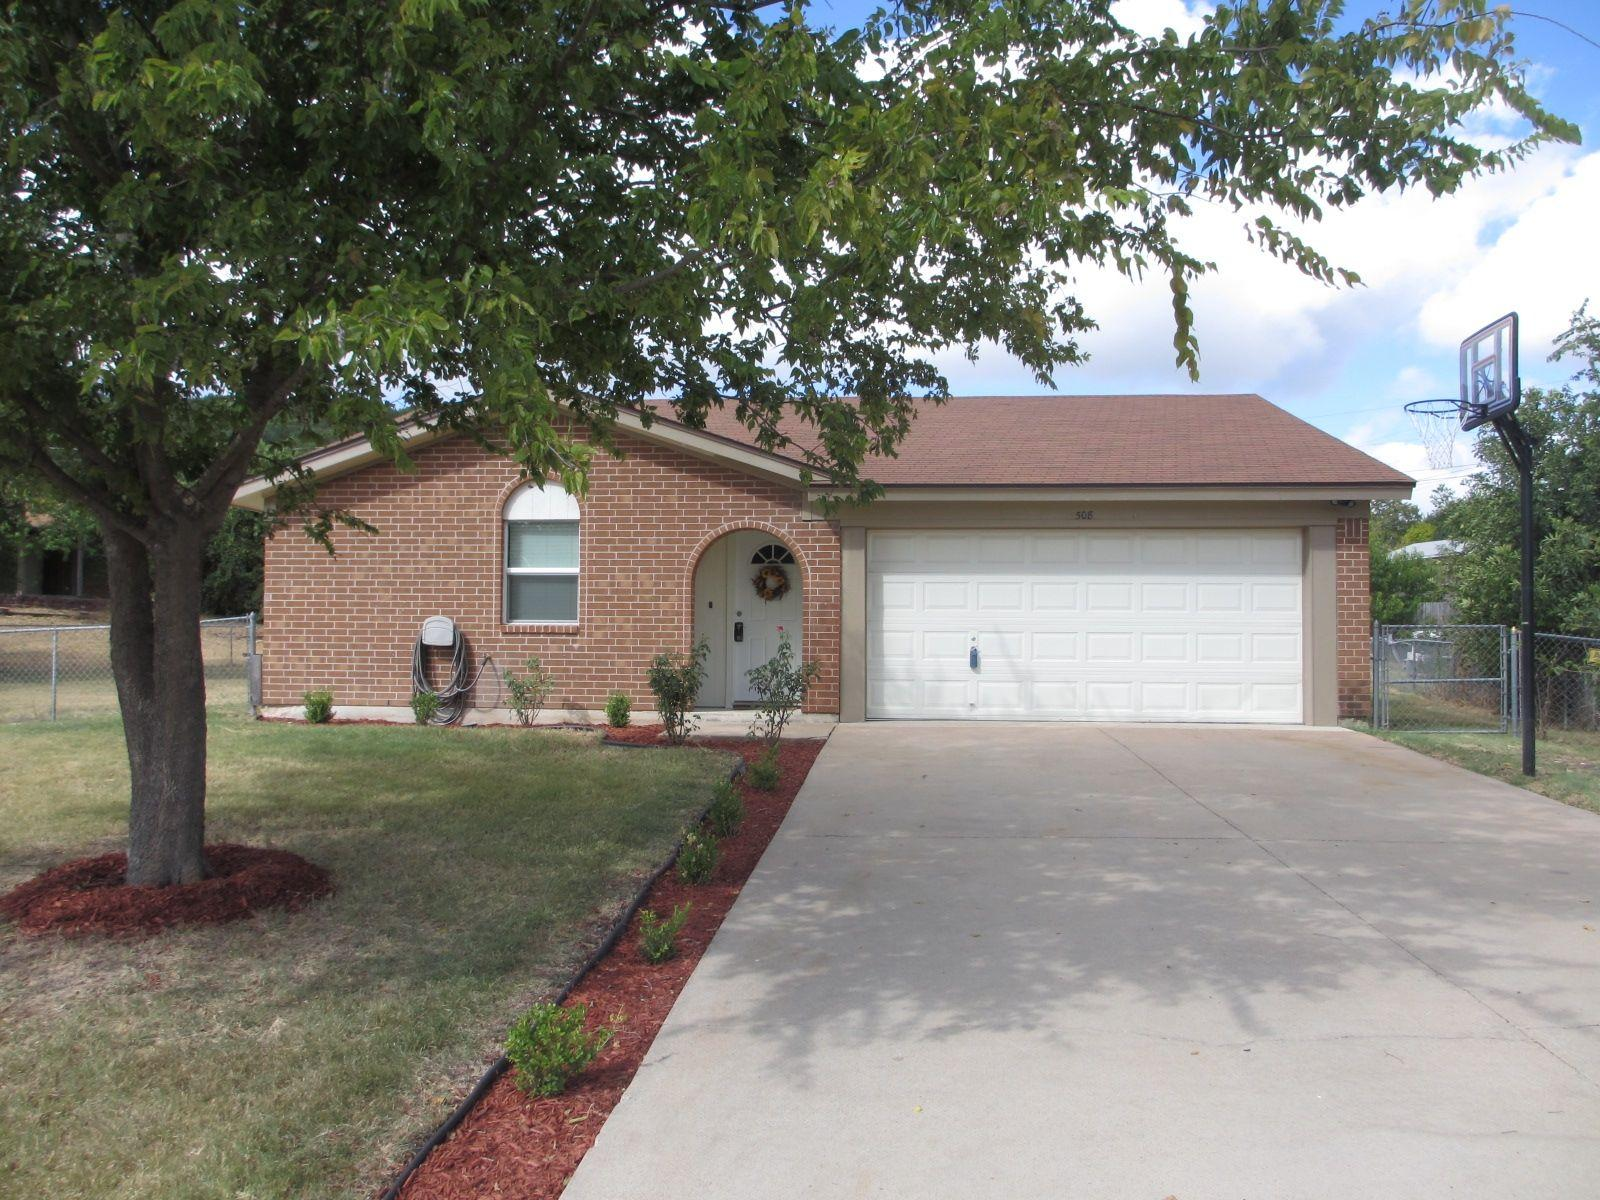 Texas Real estate - Property in COPPERAS COVE,TX